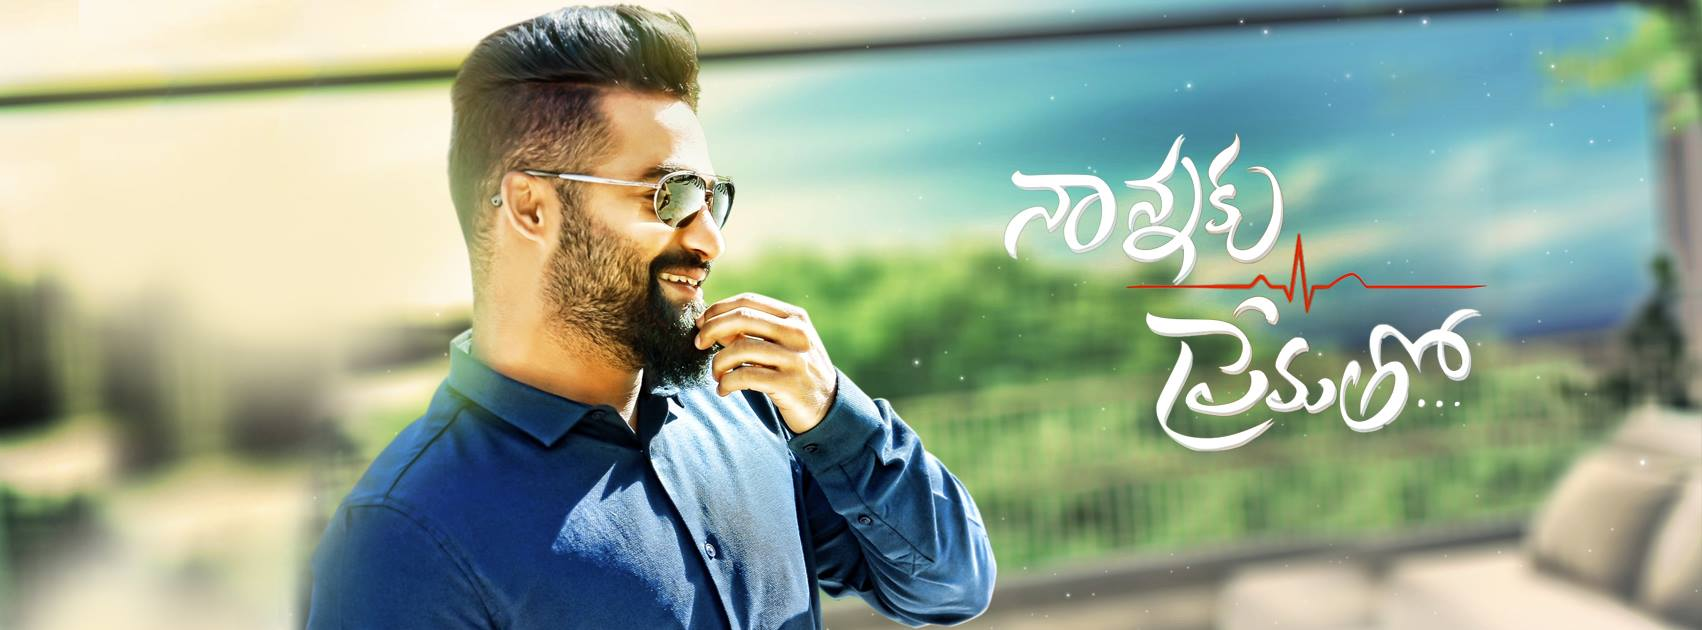 First Weekend Nannaku Prematho Movie 6th Day Box Office Collection